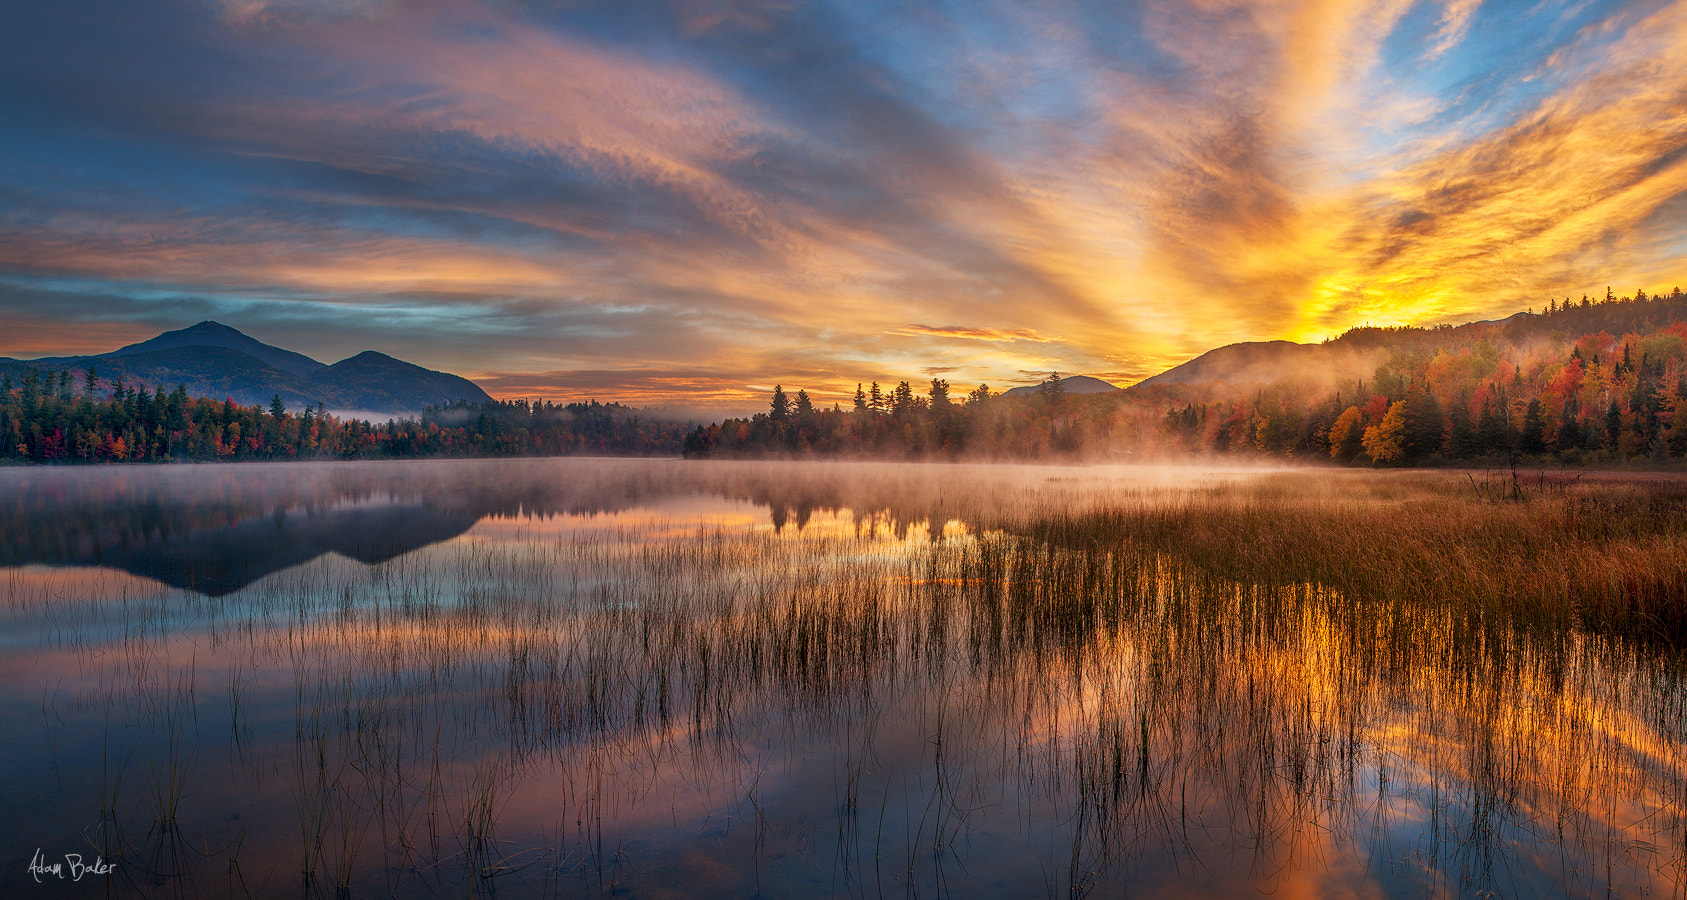 Photograph Night and Day by Adam Baker on 500px